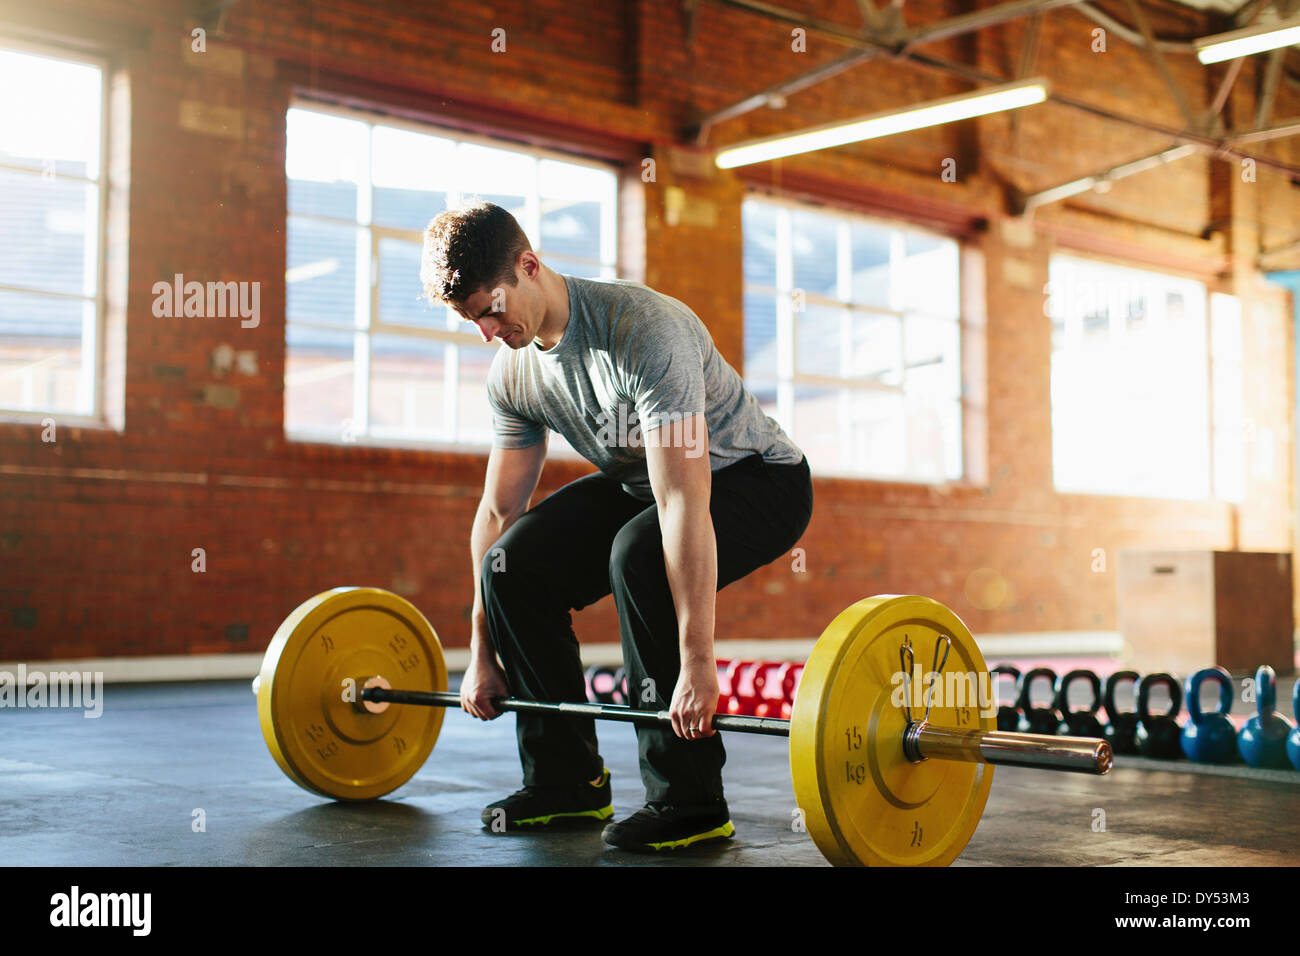 Man lifting weights in gym Photo Stock